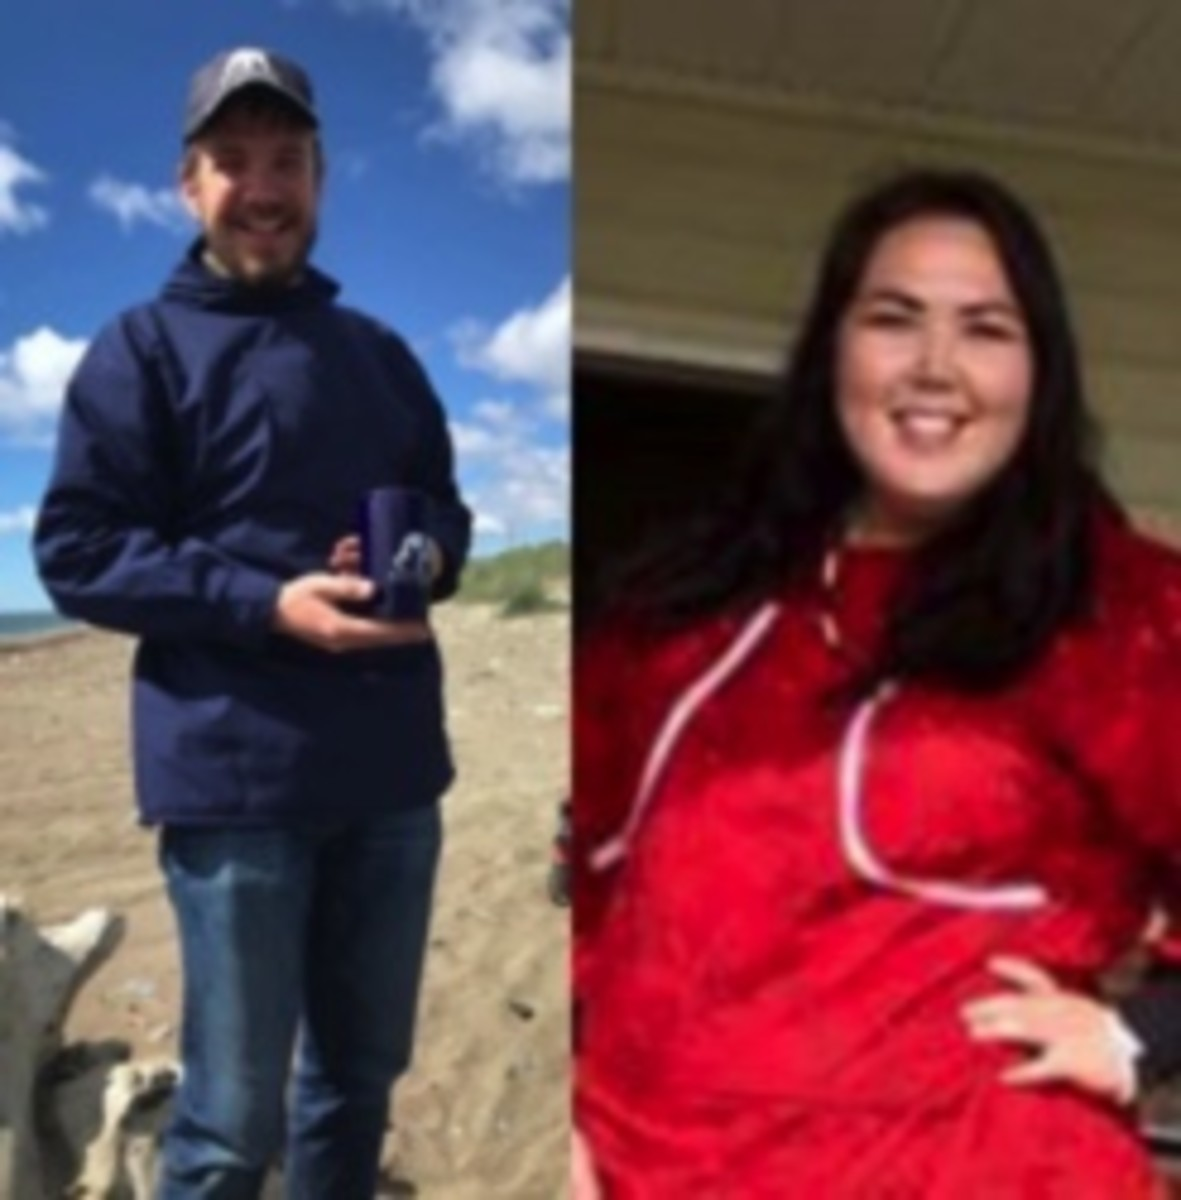 The Alaska Federation of Natives Eileen Panigeo MacLean Education award is named after a former state legislator and bilingual teacher. The 2020 award went to Paałuk Reid Magdanz and Qiġñaaq Cordelia Kellie, the founders of Iḷisaqativut, a self-funded two-week language intensive study of Iñupiaq. (Photo courtesy of the Alaska Federation of Natives.)